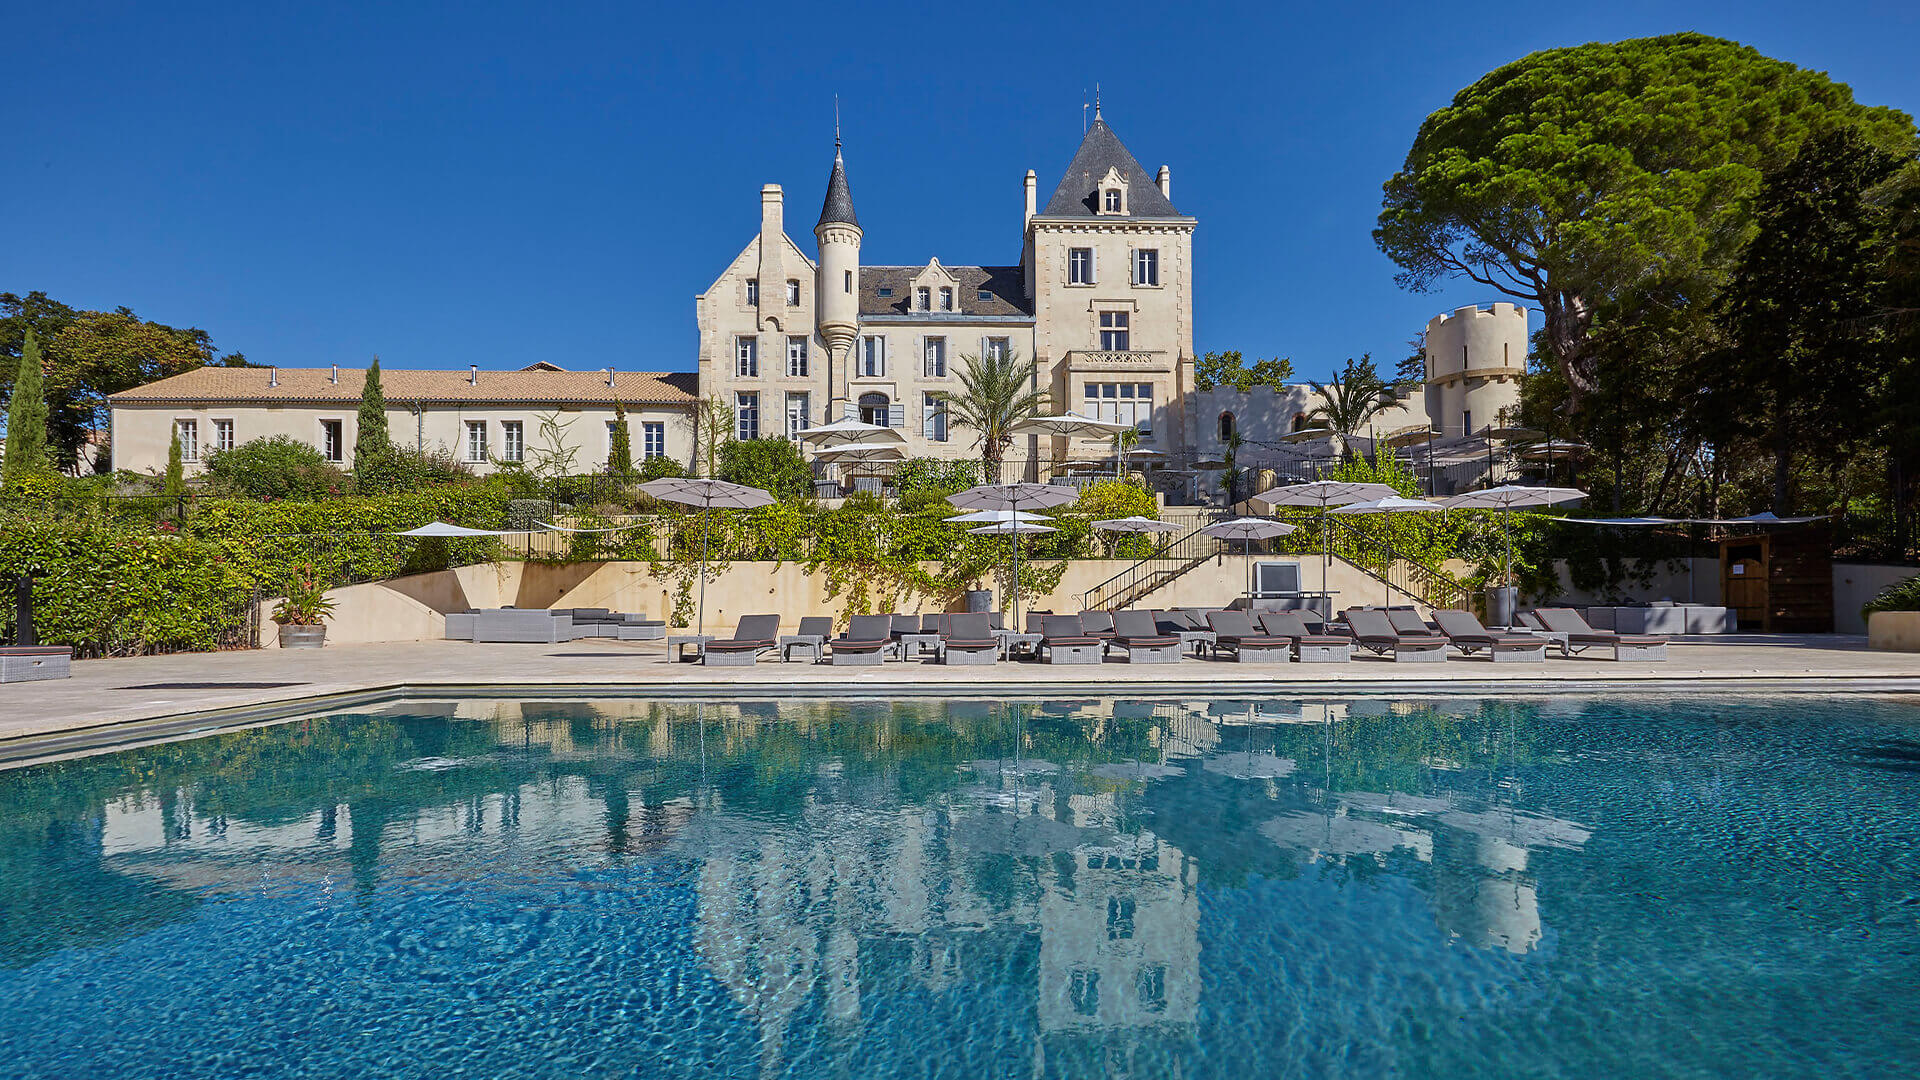 Luxury chateau with swimming pool